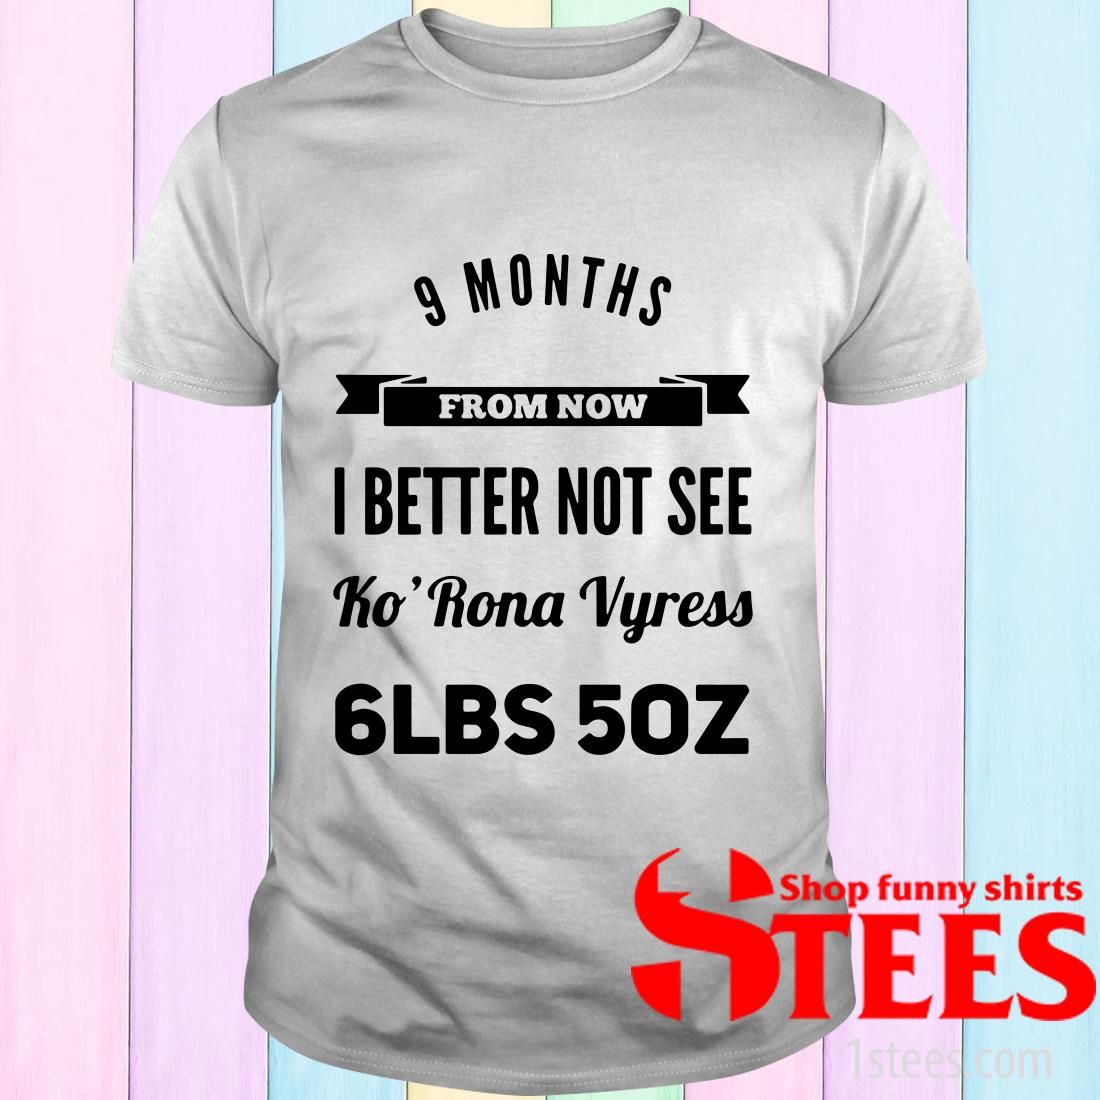 9 Months From Now I Better Not See T-Shirt